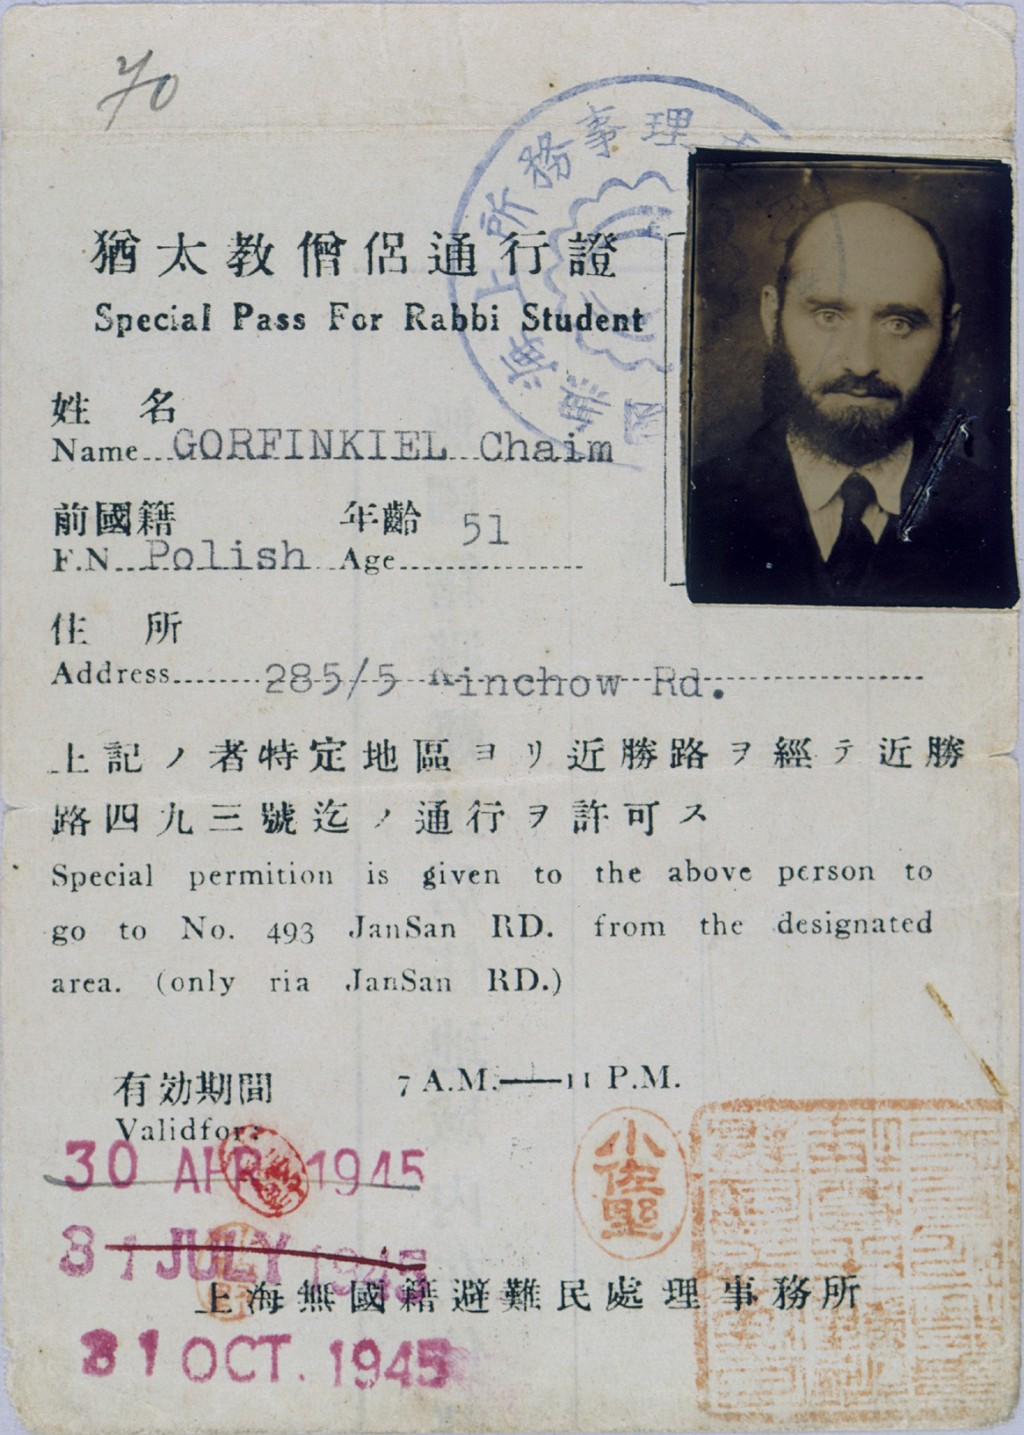 Pass for rabbinical student Chaim Gorfinkel [LCID: 2002105t]